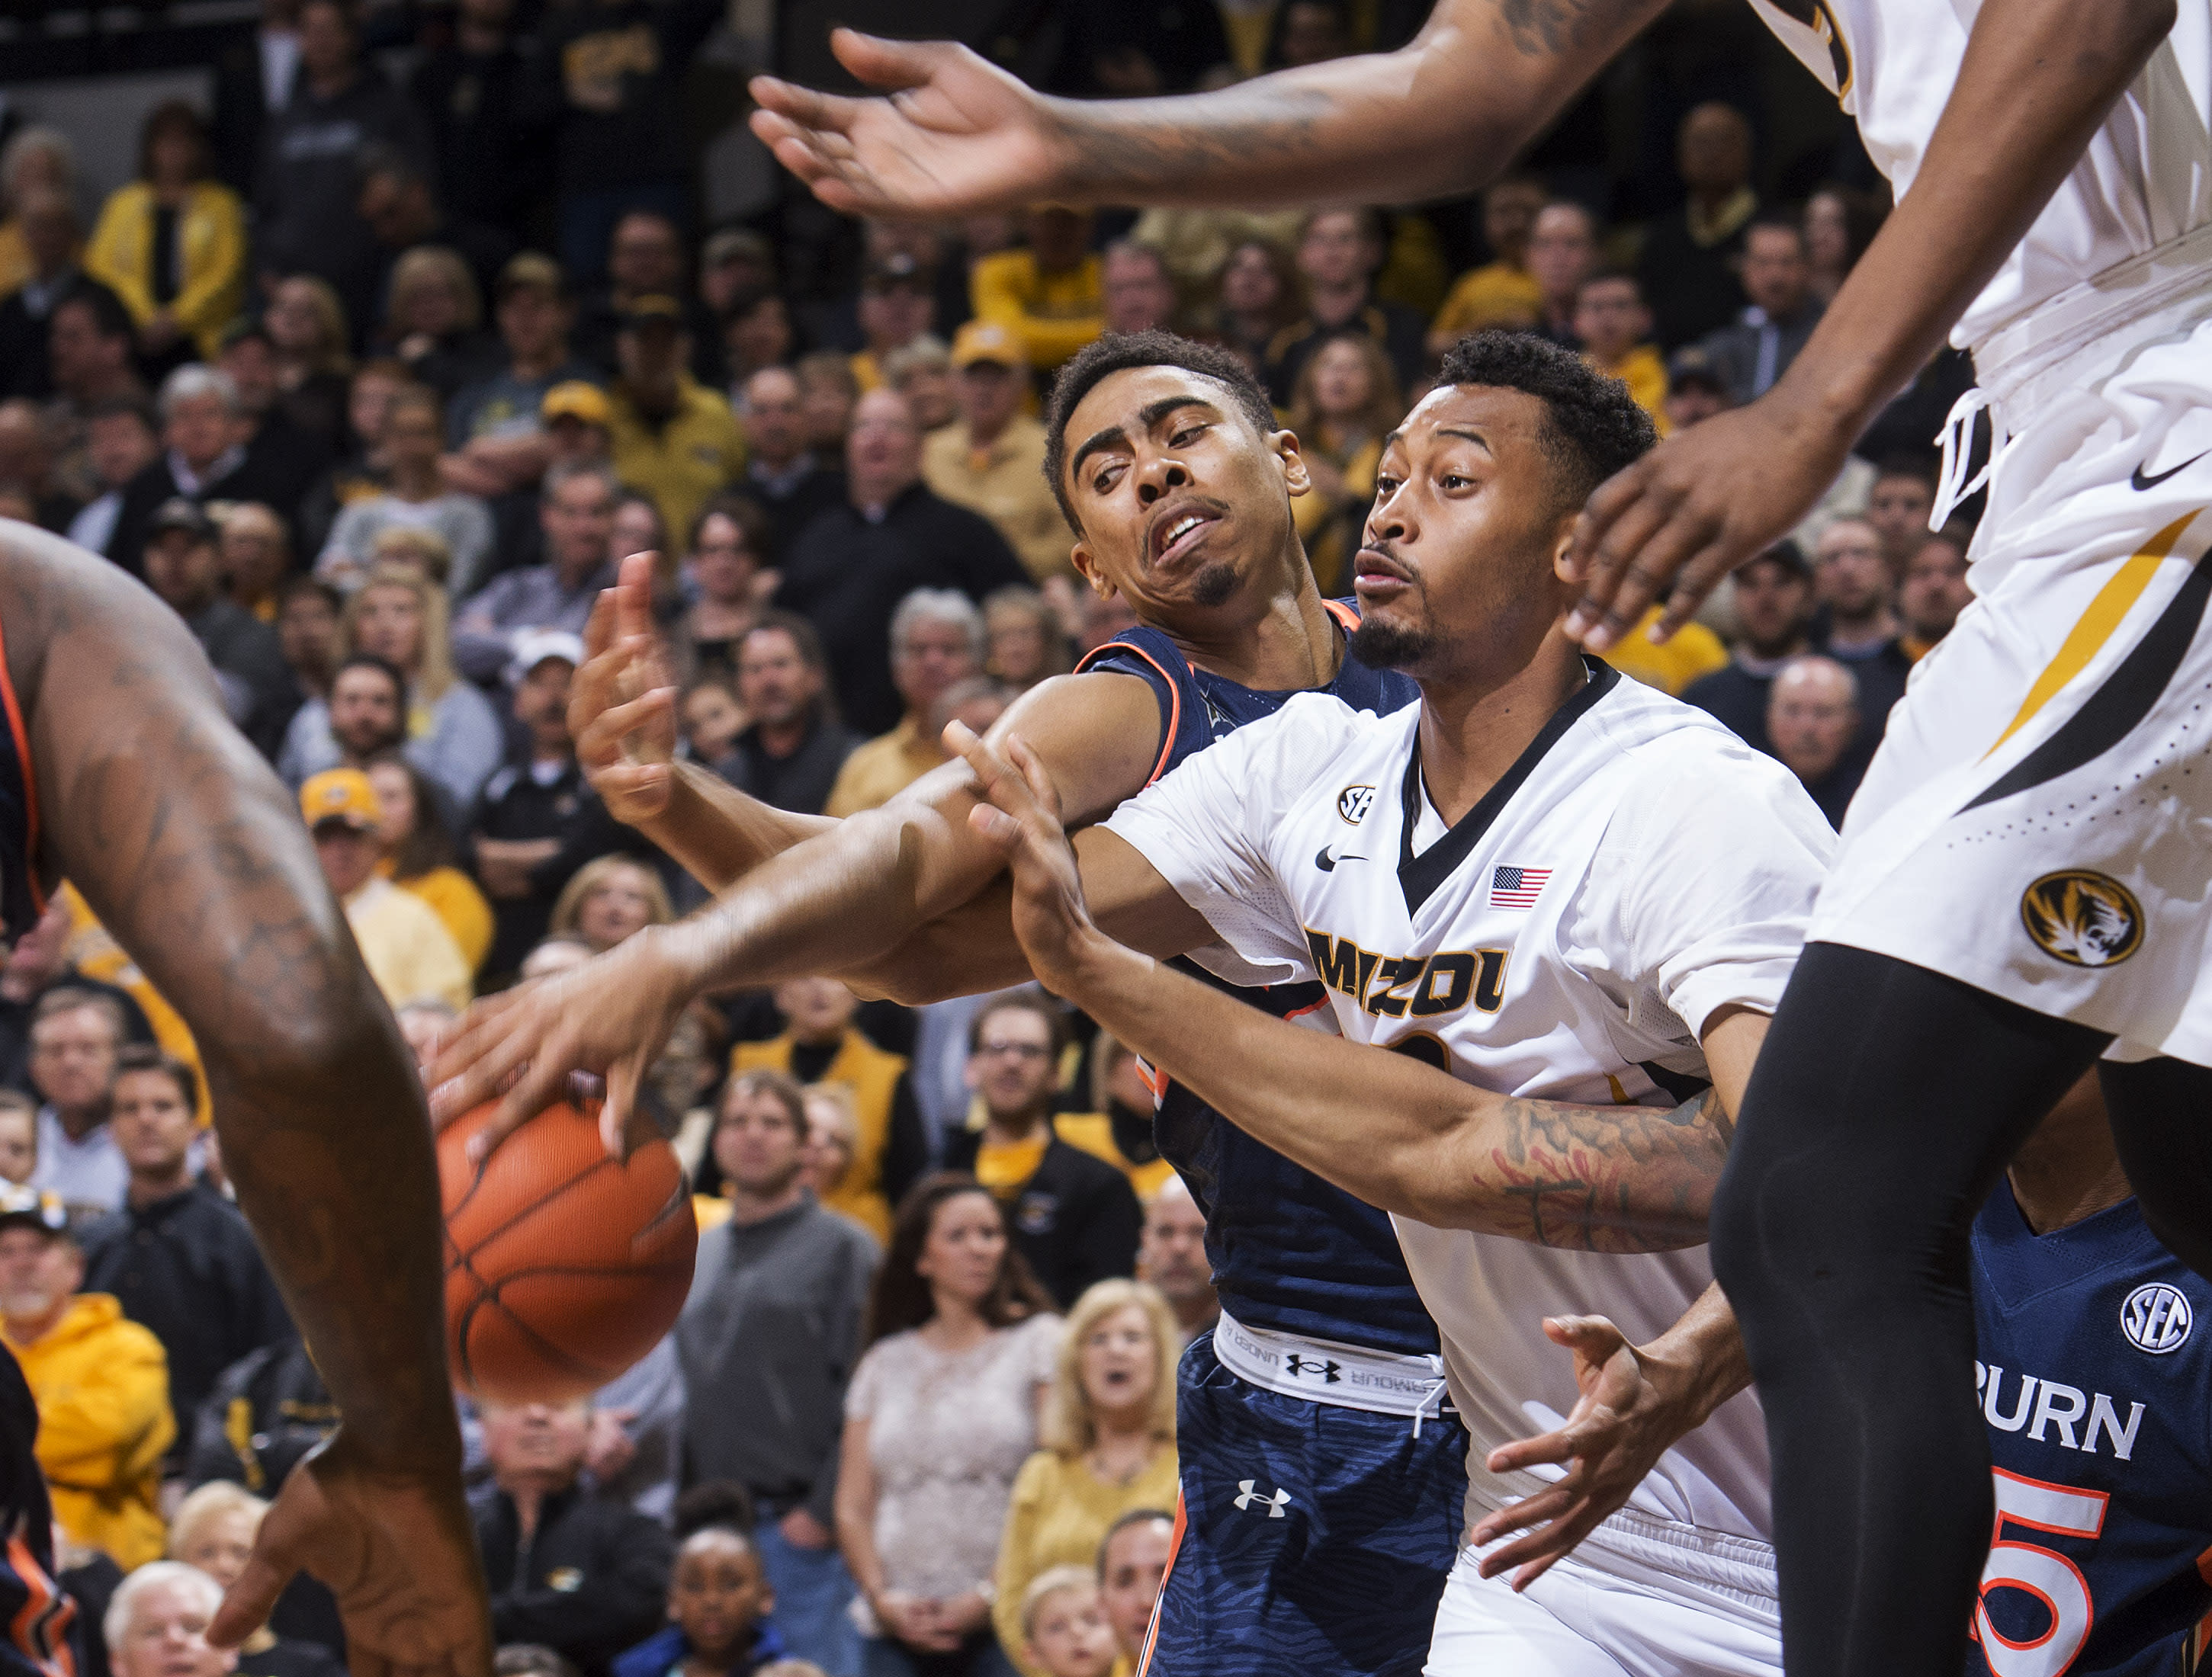 Shamburger leads Missouri to 63-61 win over Auburn